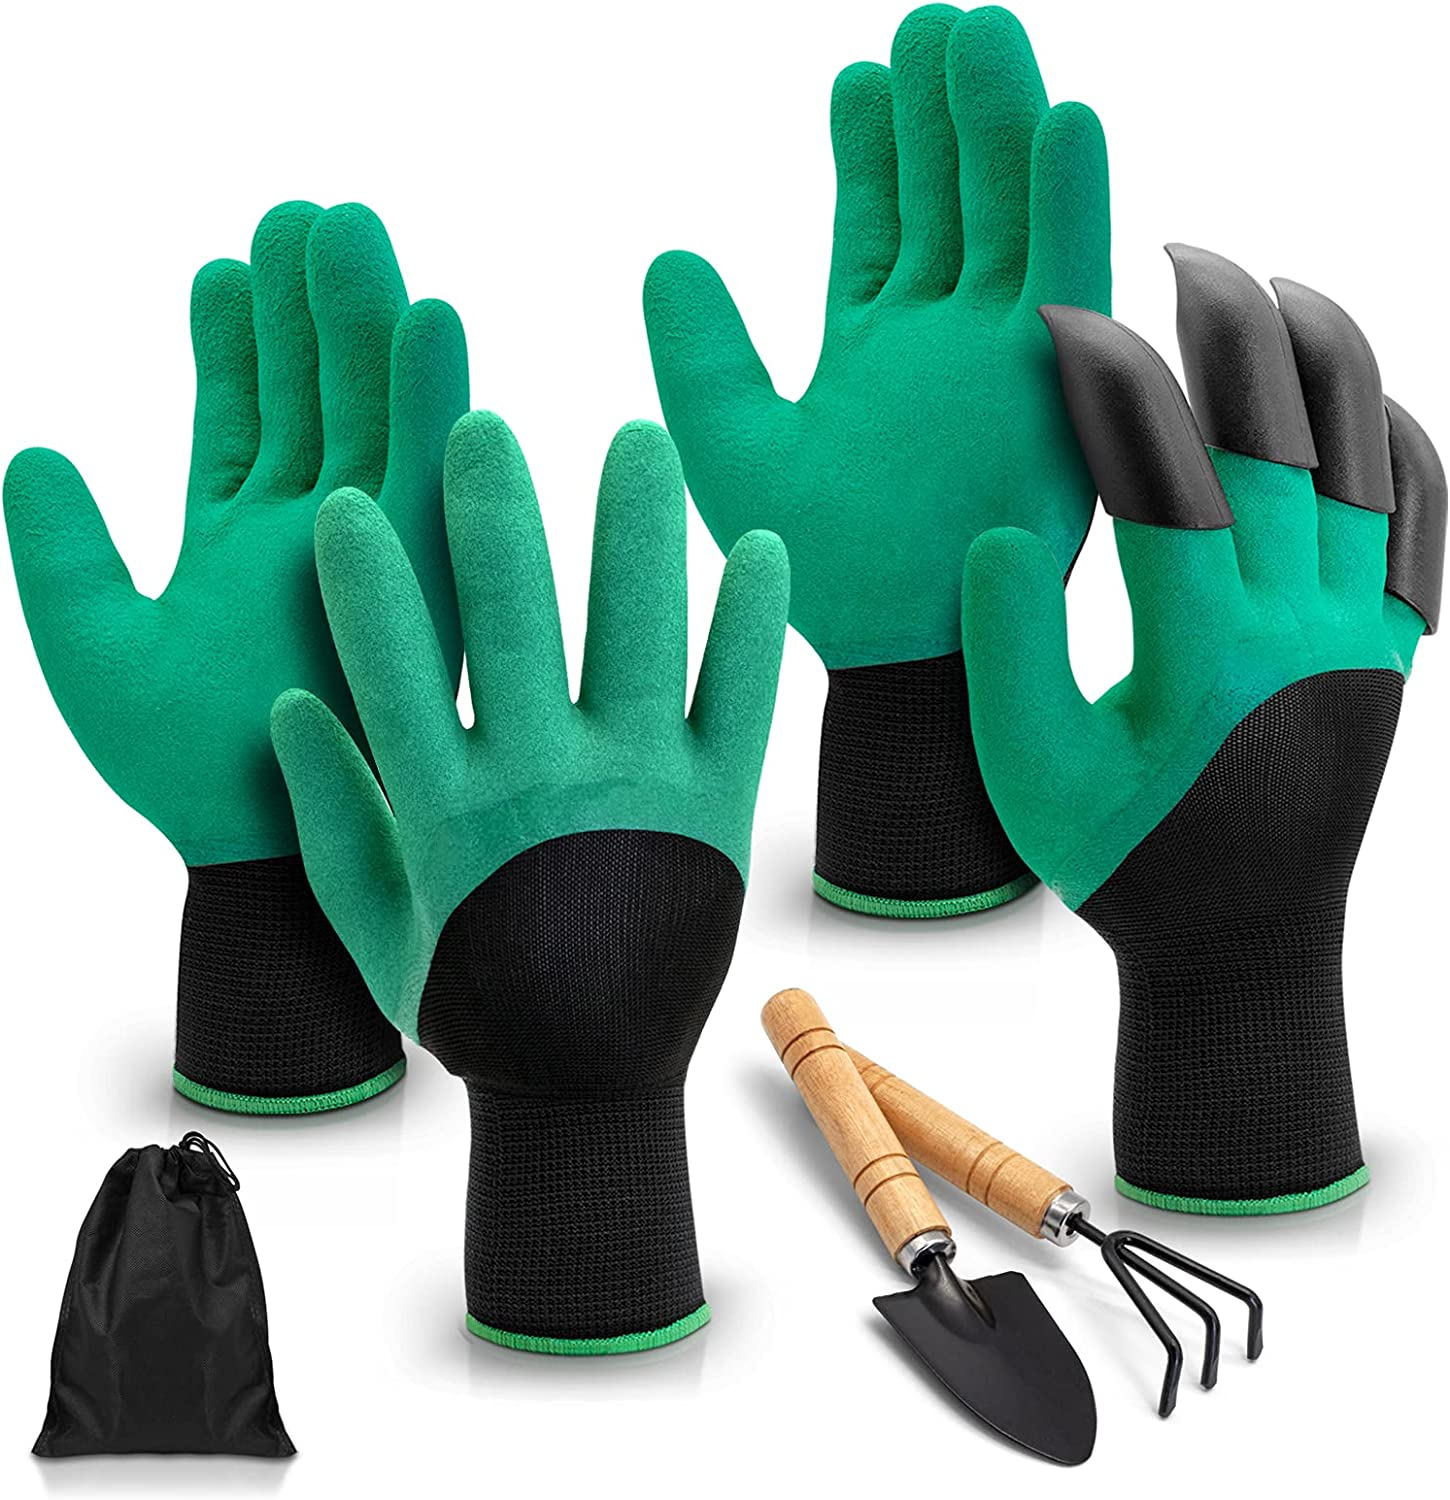 Gardening Gloves, 2 pairs green Garden Gloves with a Garden Shovel and a Cultivator, Garden Gloves with Claws for diggingPlantingWeeding Seeding , Excellent Plant Gifts